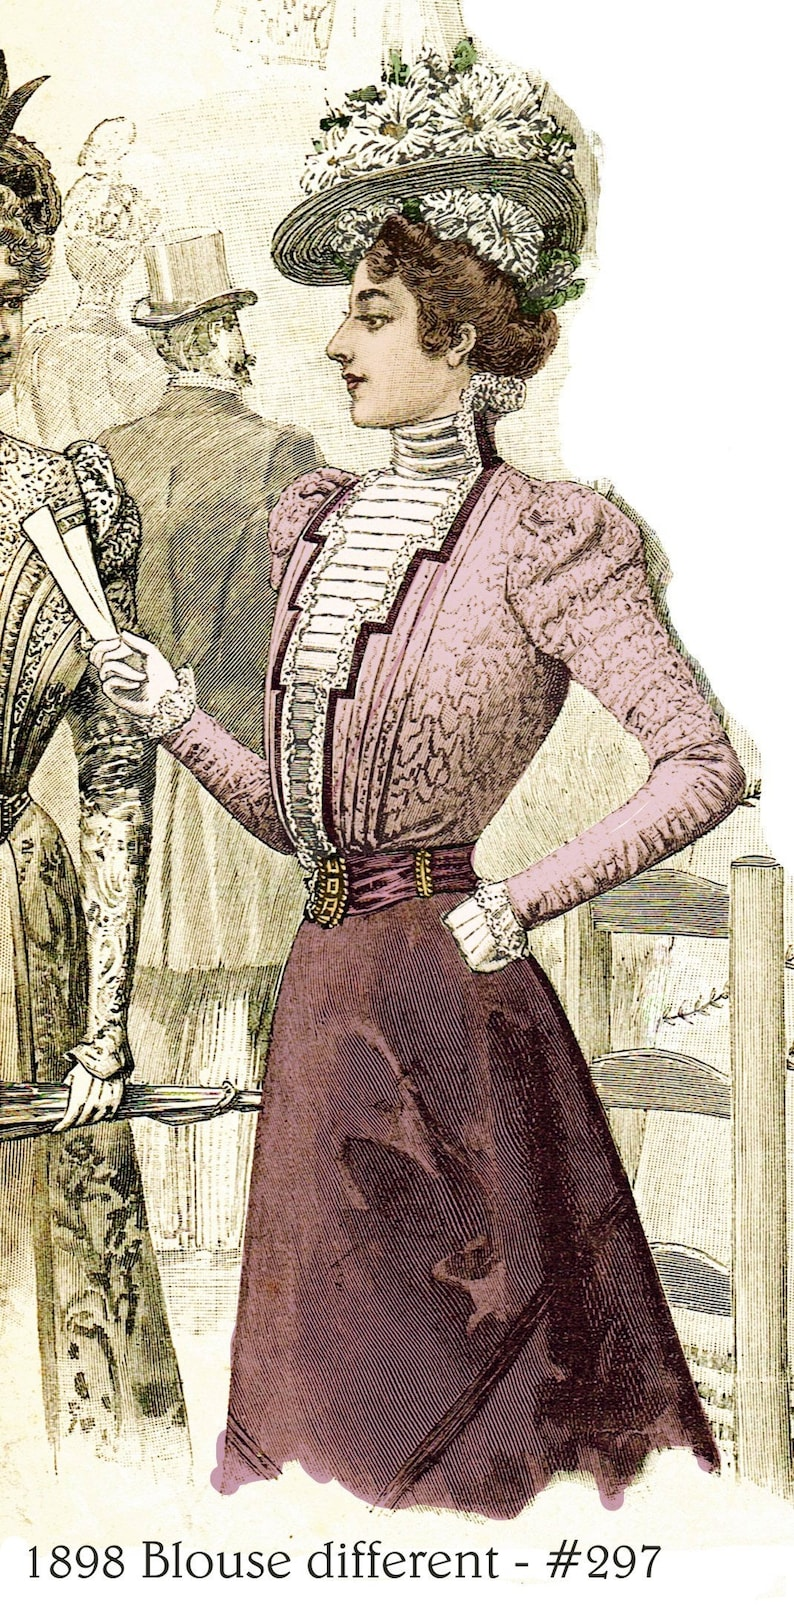 Steampunk Sewing Patterns- Dresses, Coats, Plus Sizes, Men's Patterns 1898 Victorian Blouse pattern - sized for you from antique originals - with bonus lingerie patterns and library - #297 $4.95 AT vintagedancer.com